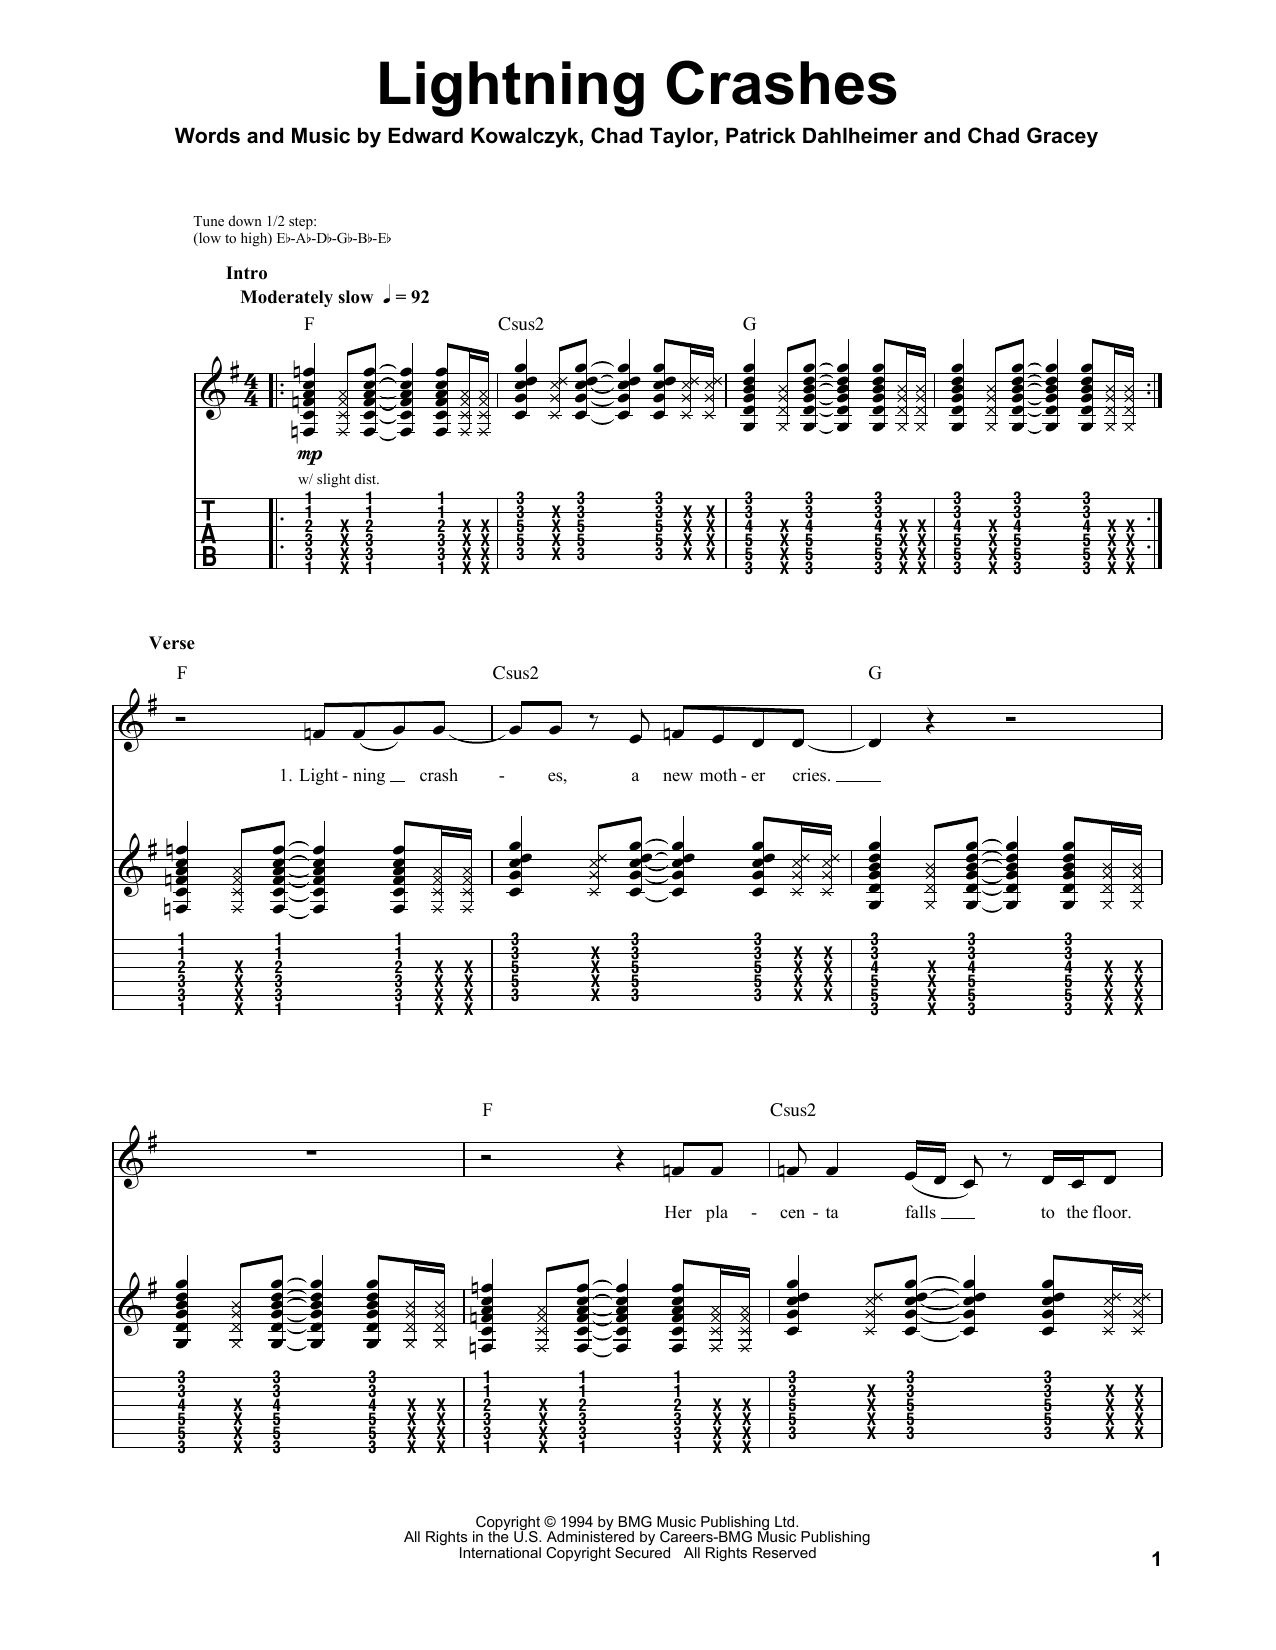 Live Lightning Crashes sheet music preview music notes and score for Guitar Tab including 7 page(s)